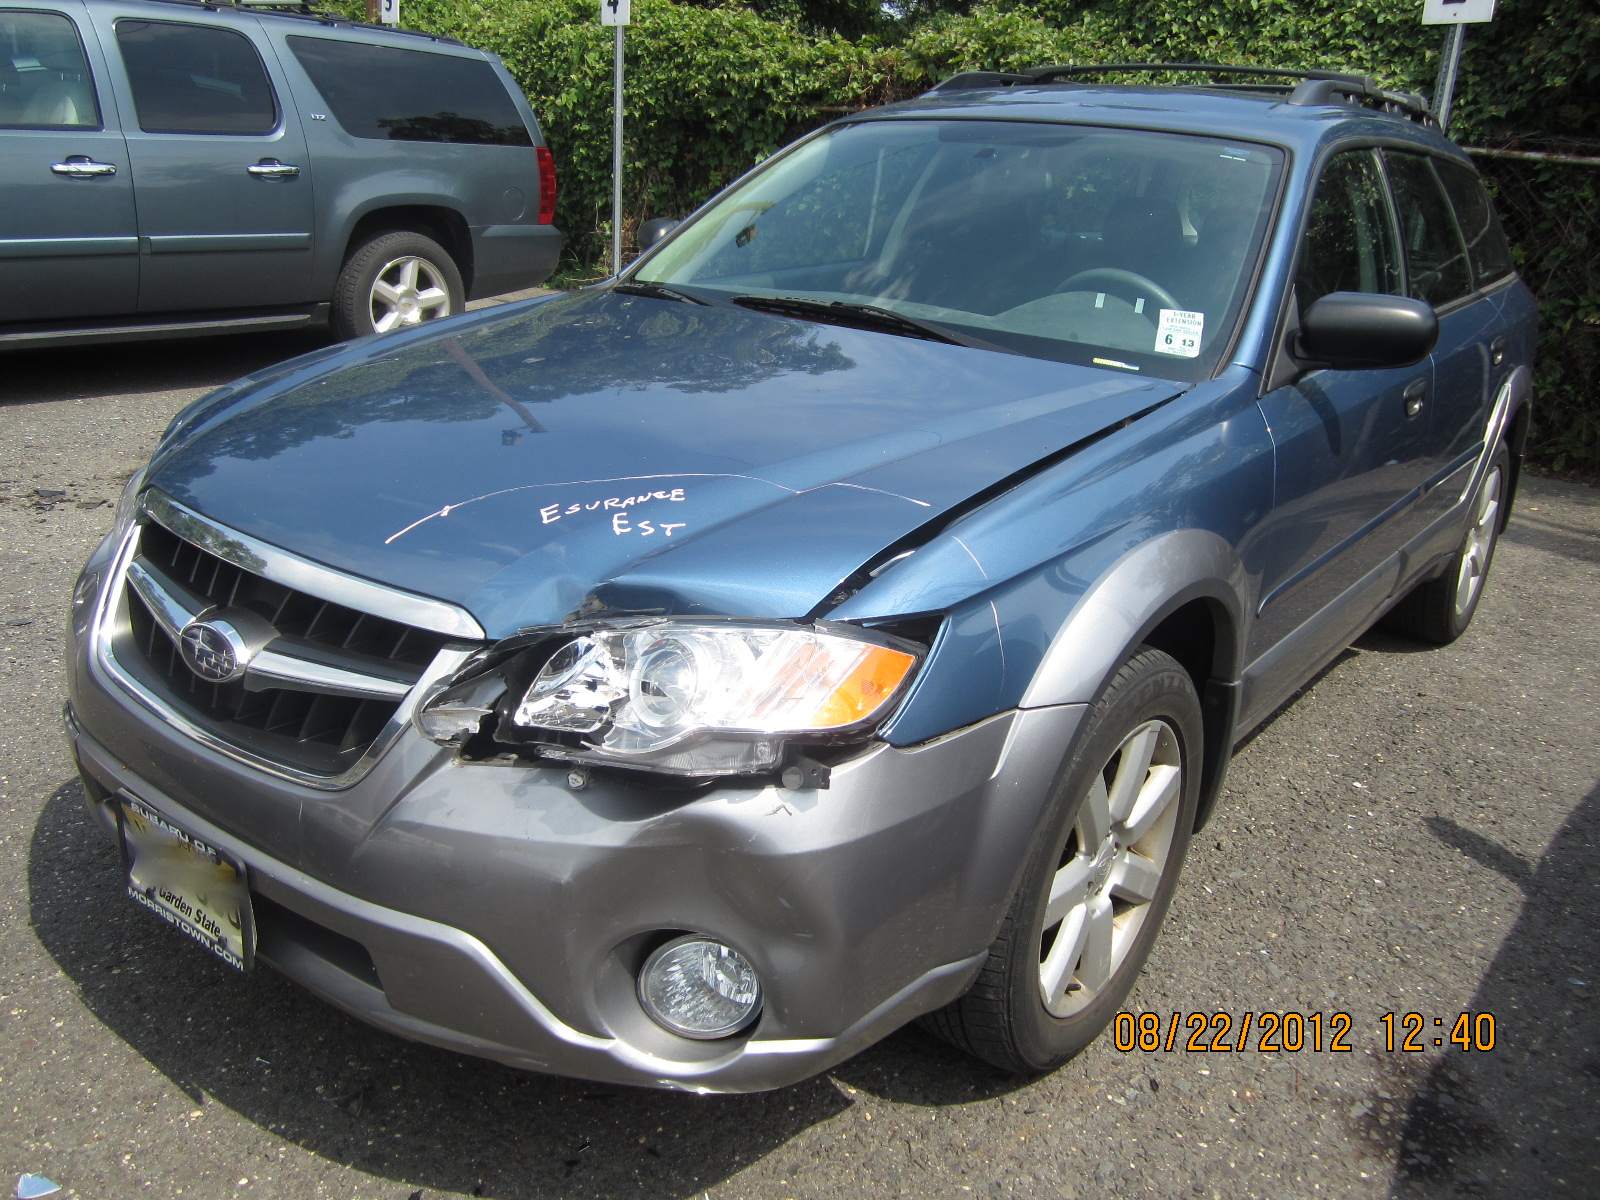 2009 subaru outback before after photos auto body repair collex collision experts. Black Bedroom Furniture Sets. Home Design Ideas